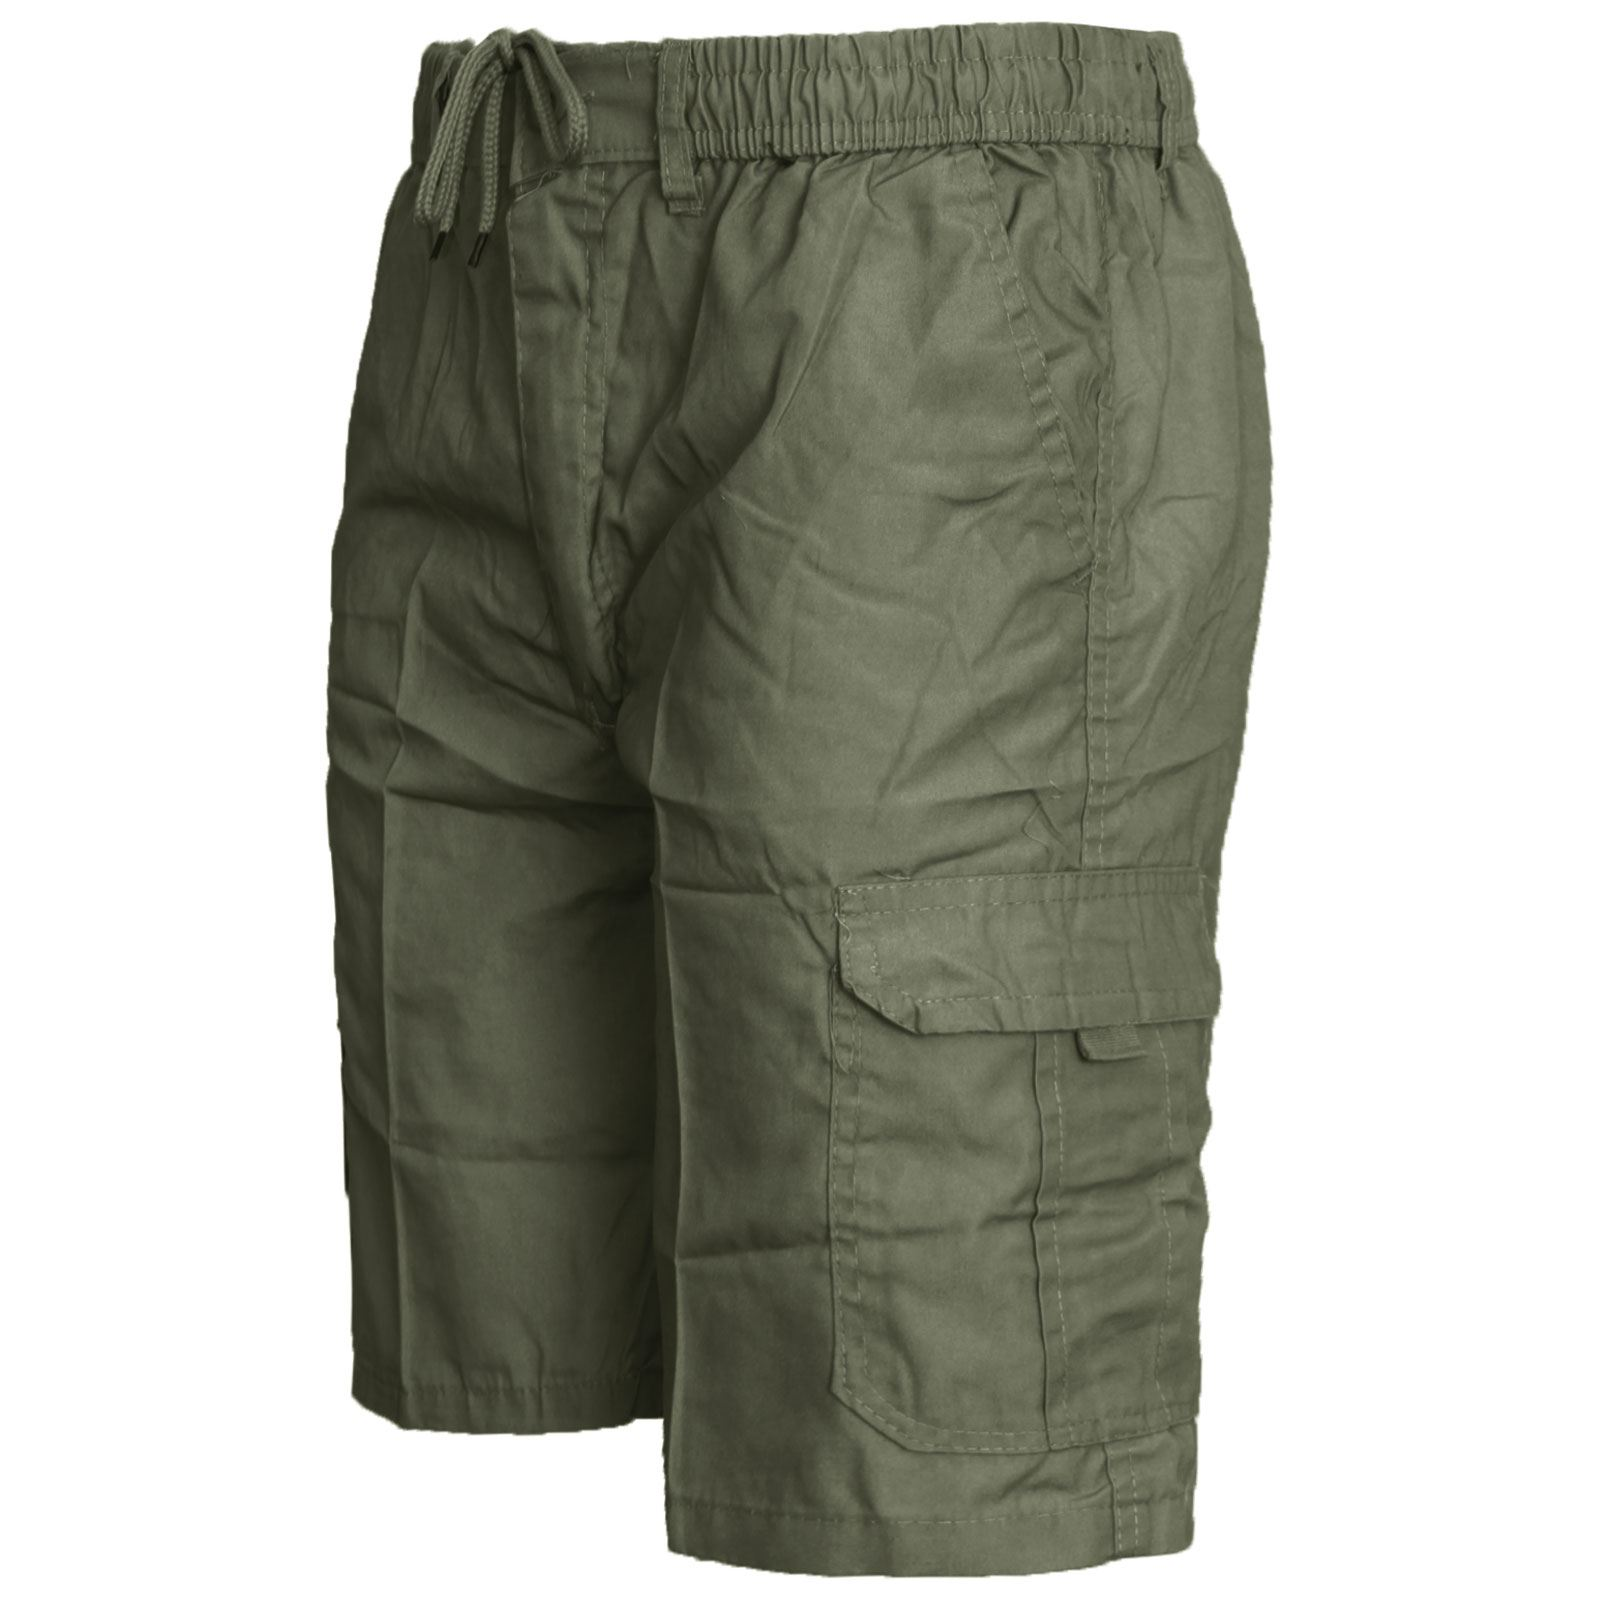 MENS-ELASTICATED-KNEE-LENGTH-OR-3-4-SHORTS-CARGO-COMBAT-MULTI-POCKET-SUMMER-PANT thumbnail 12